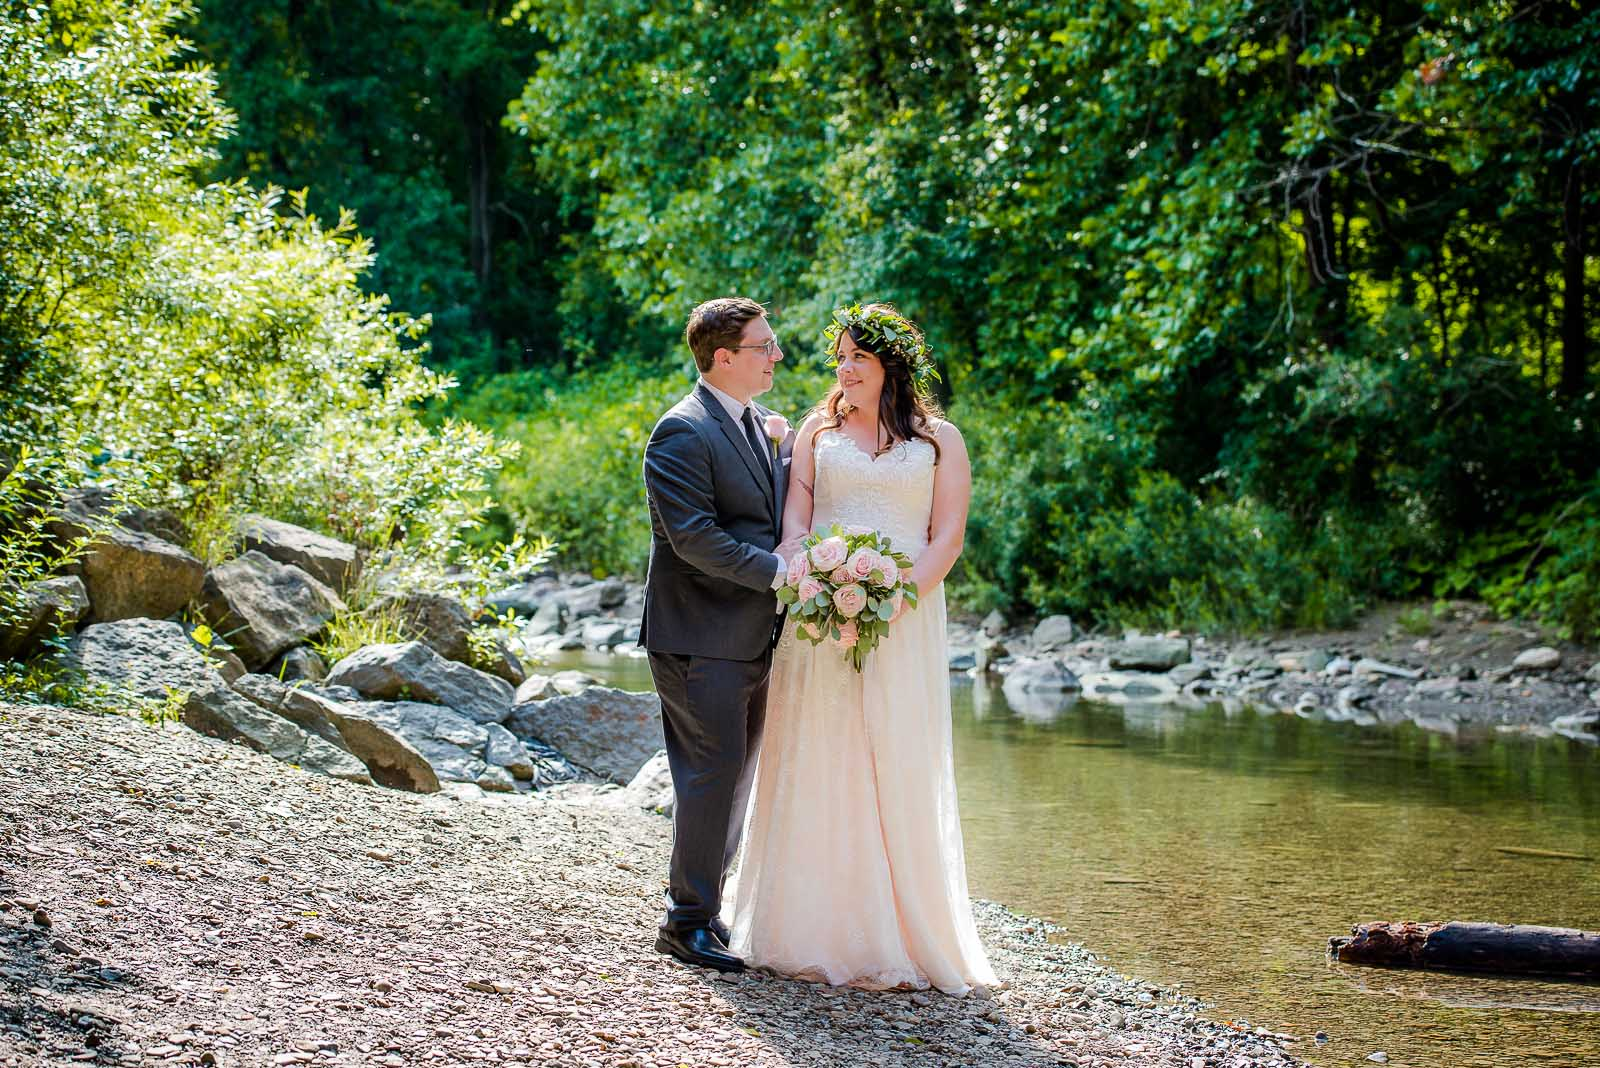 Eric_and_Christy_Photography_Blog_2018_Portraits-40